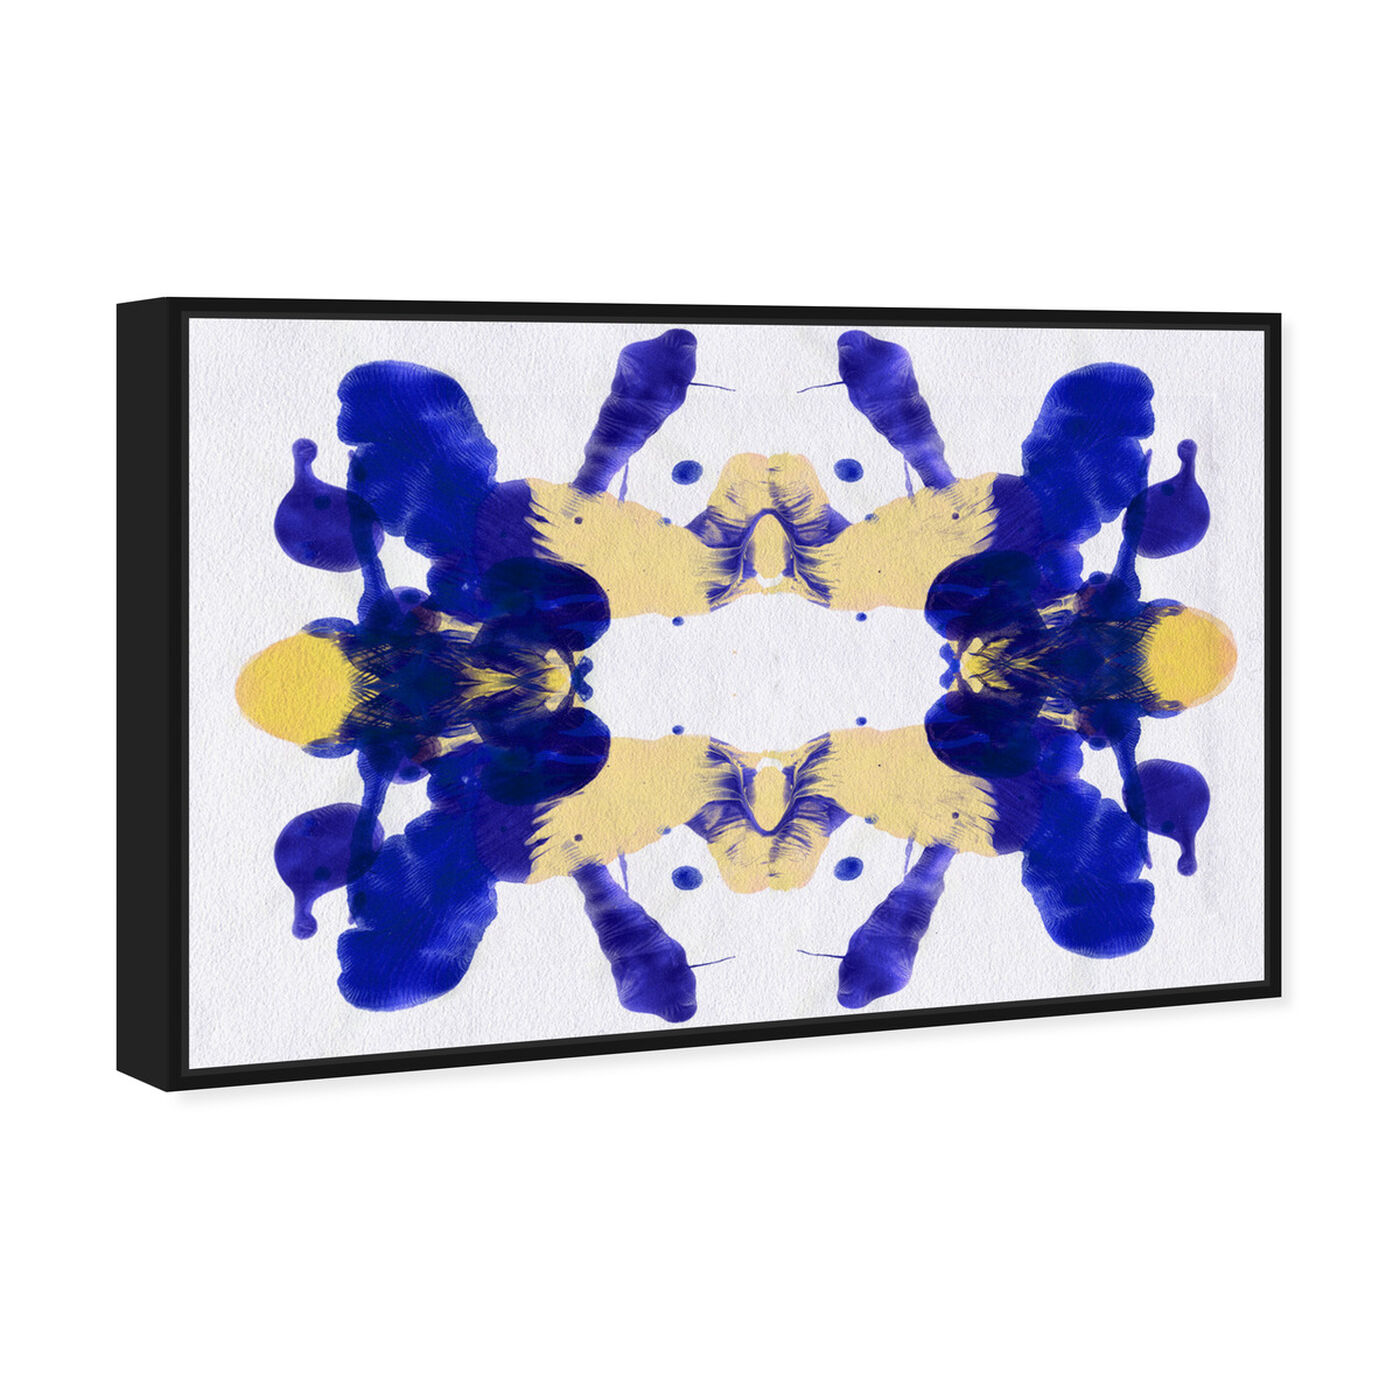 Angled view of Blue Veranda - Signature Collection featuring abstract and paint art.